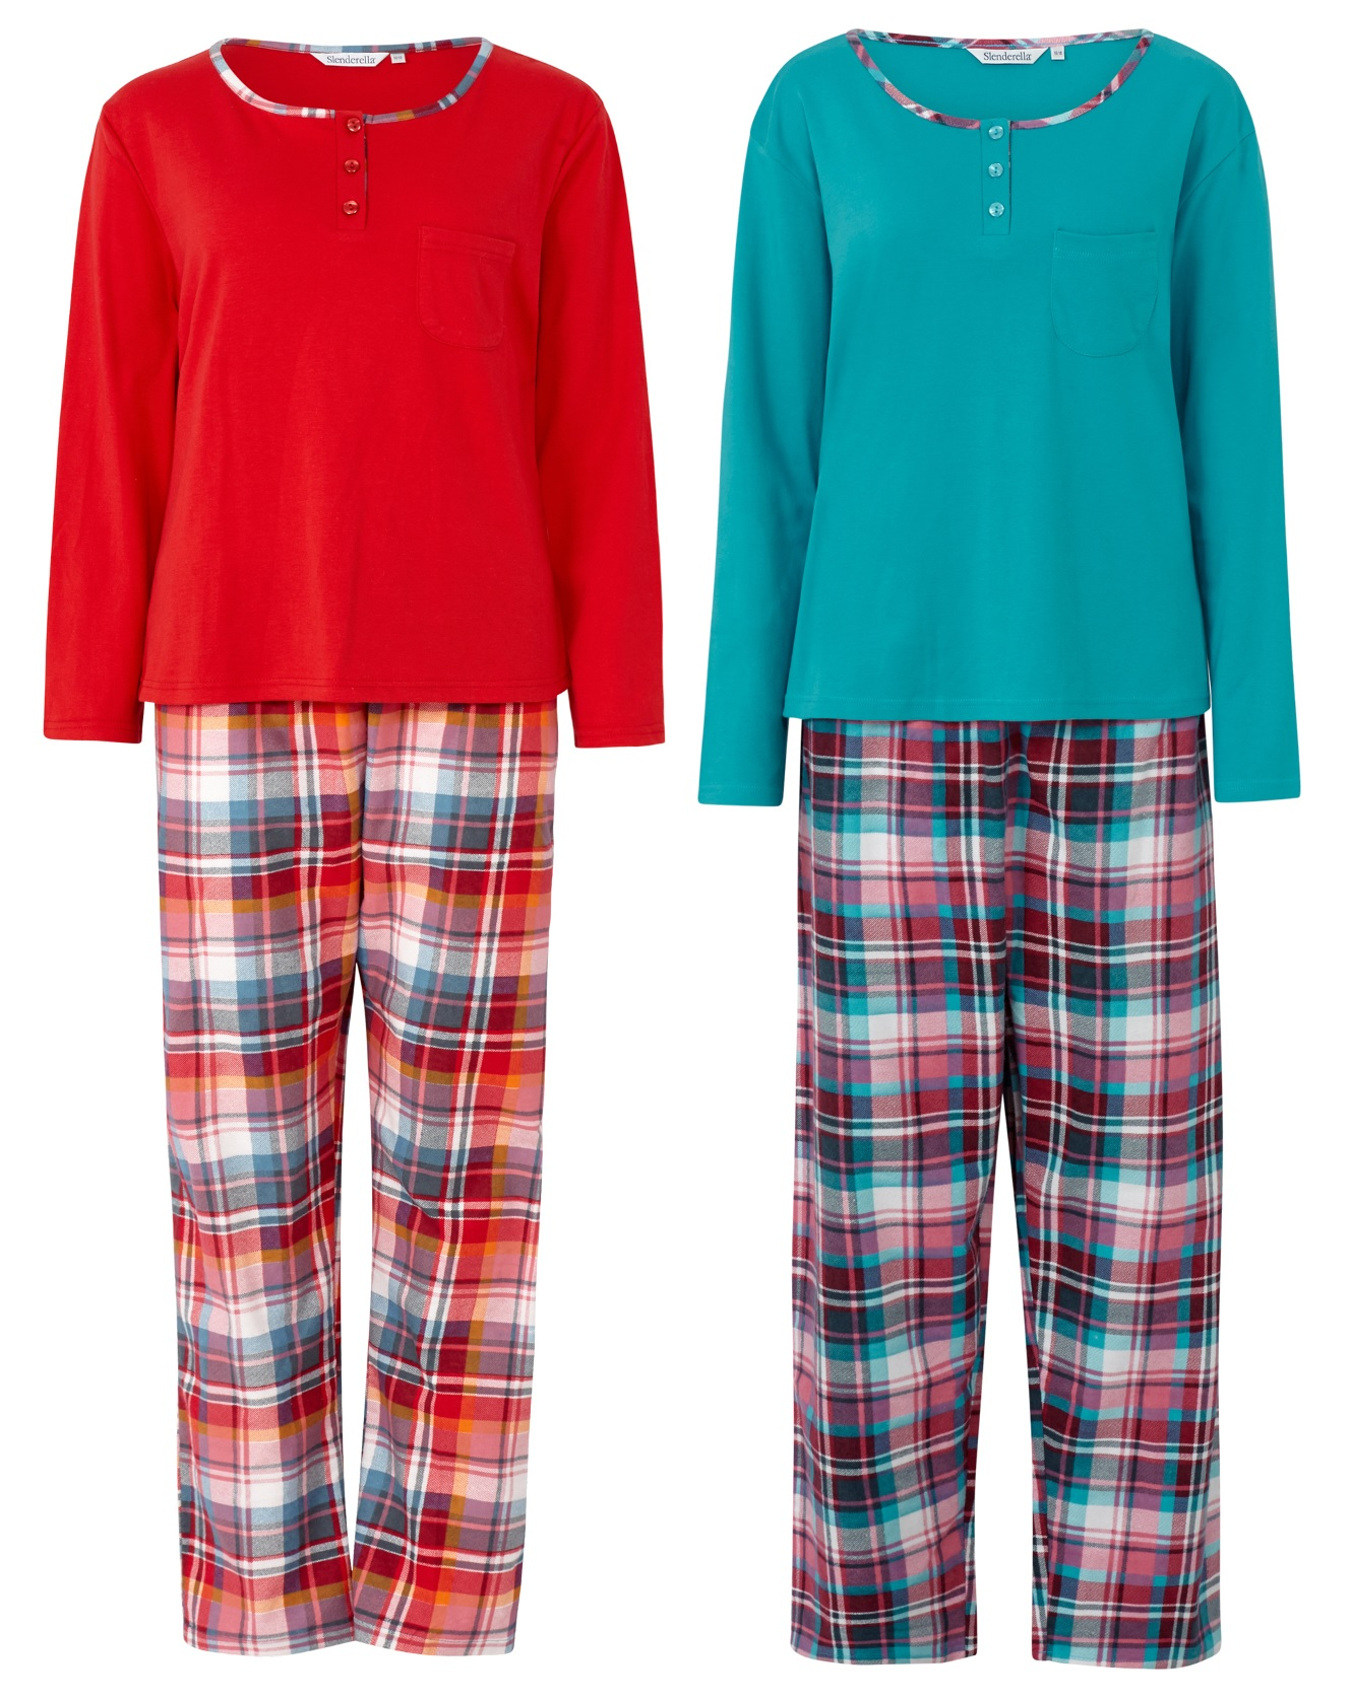 c9c9df1aaa Pyjamas Set Ladies Slenderella Jersey Cotton Plain Top   Checked Bottoms PJs